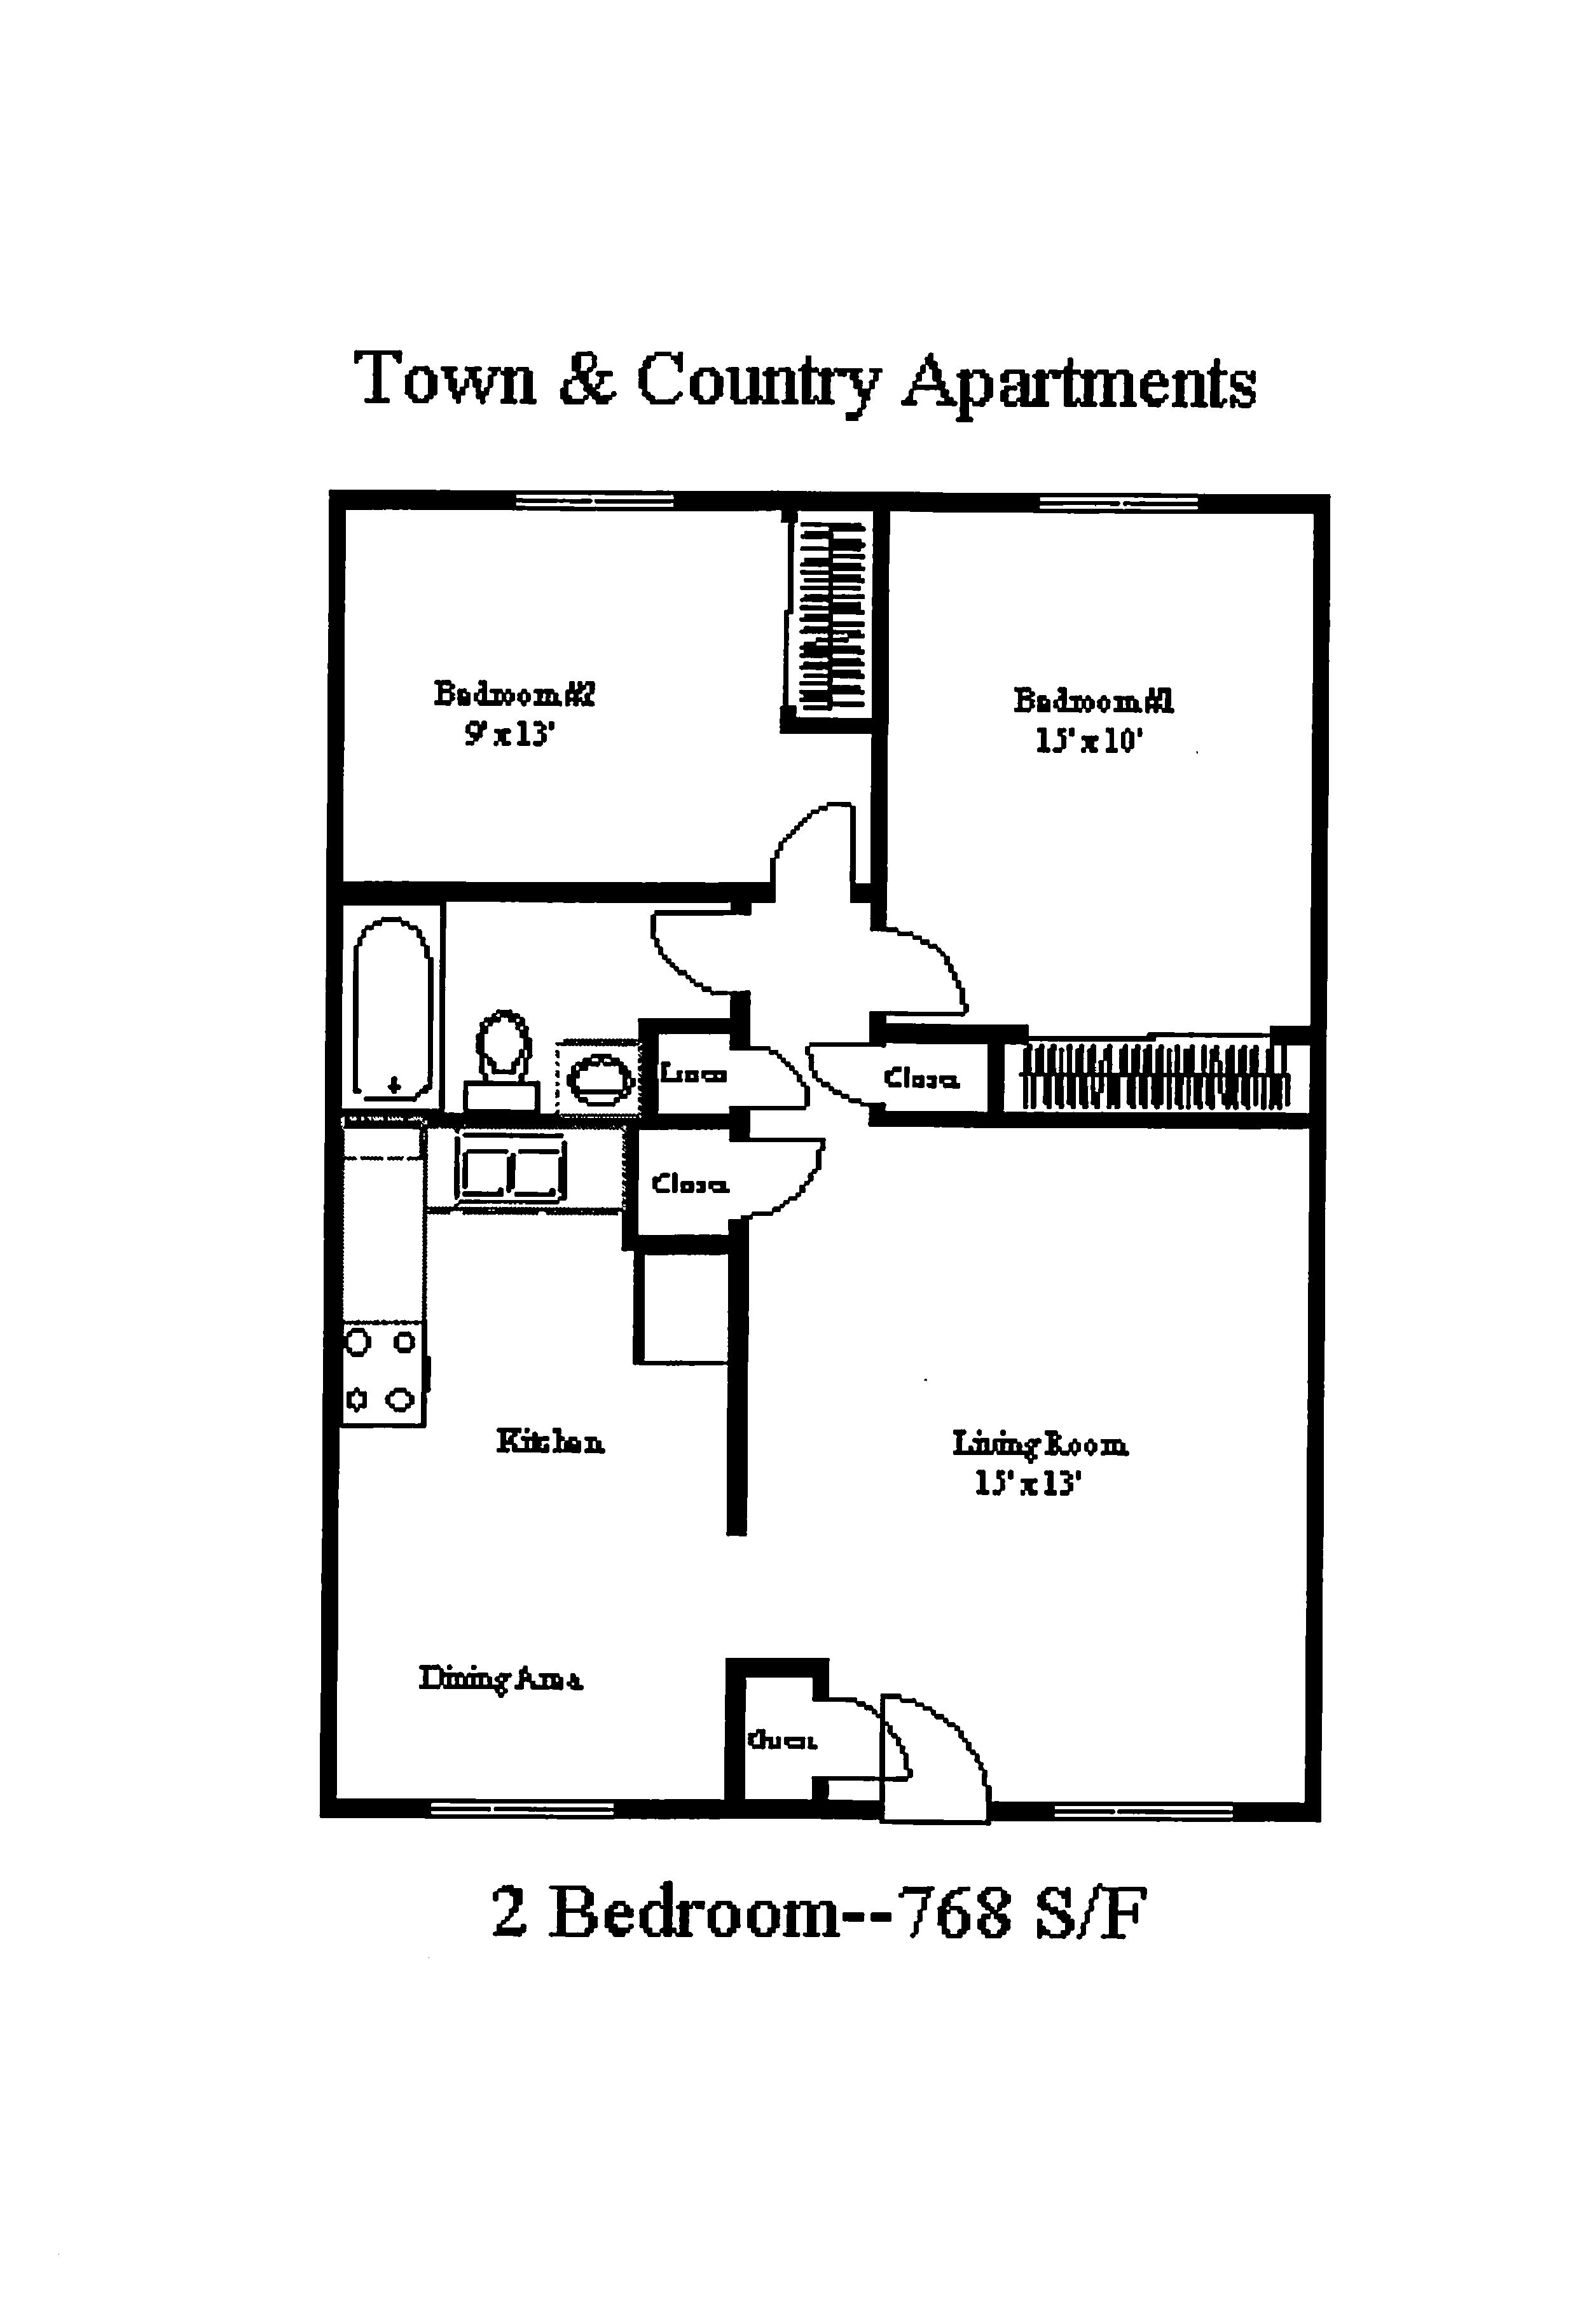 Town & Country Apartments - 2 BR